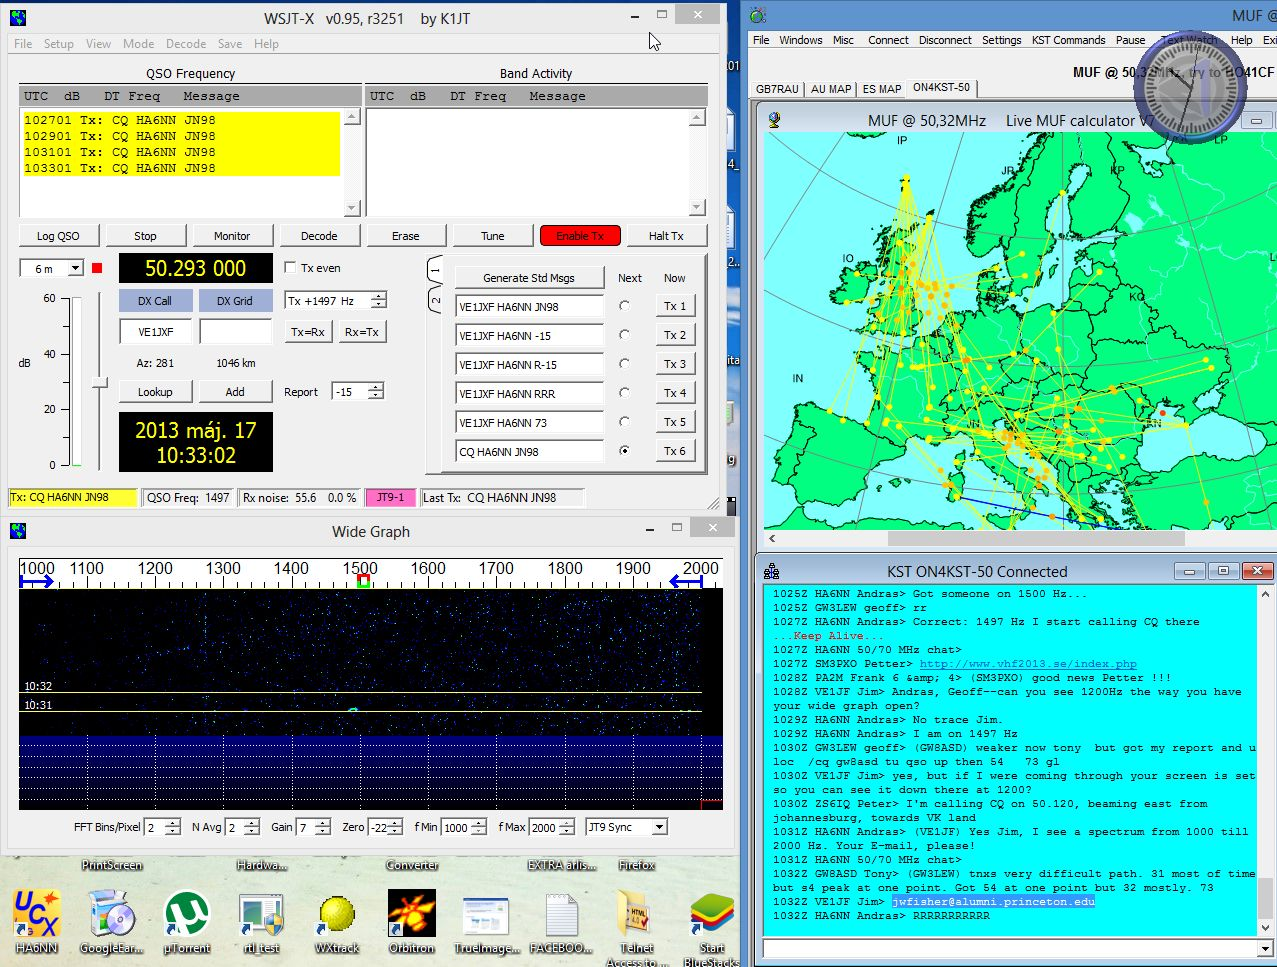 WSJT-X new adjustments on Wide Graph